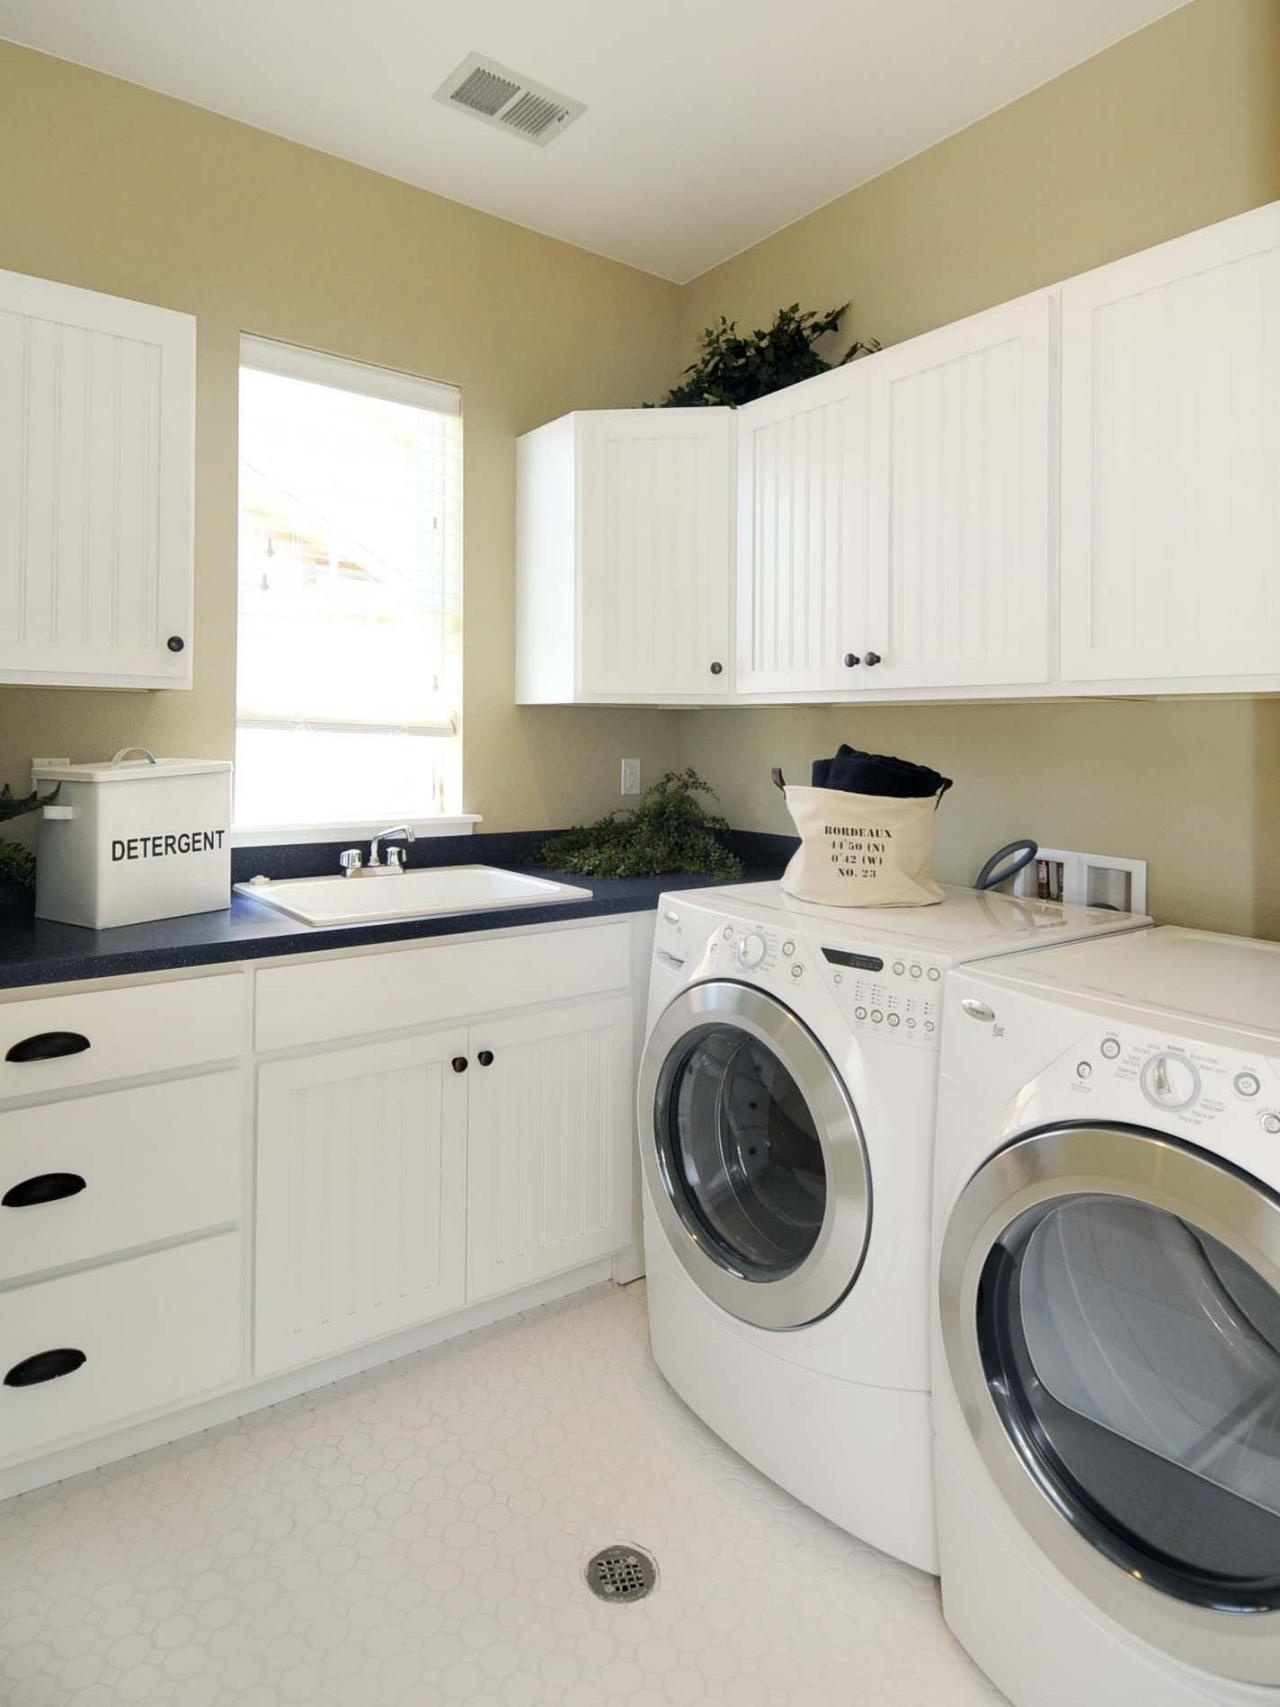 Fancy laundry room moving upstairs. traditionally, laundry rooms ... oxbshoq